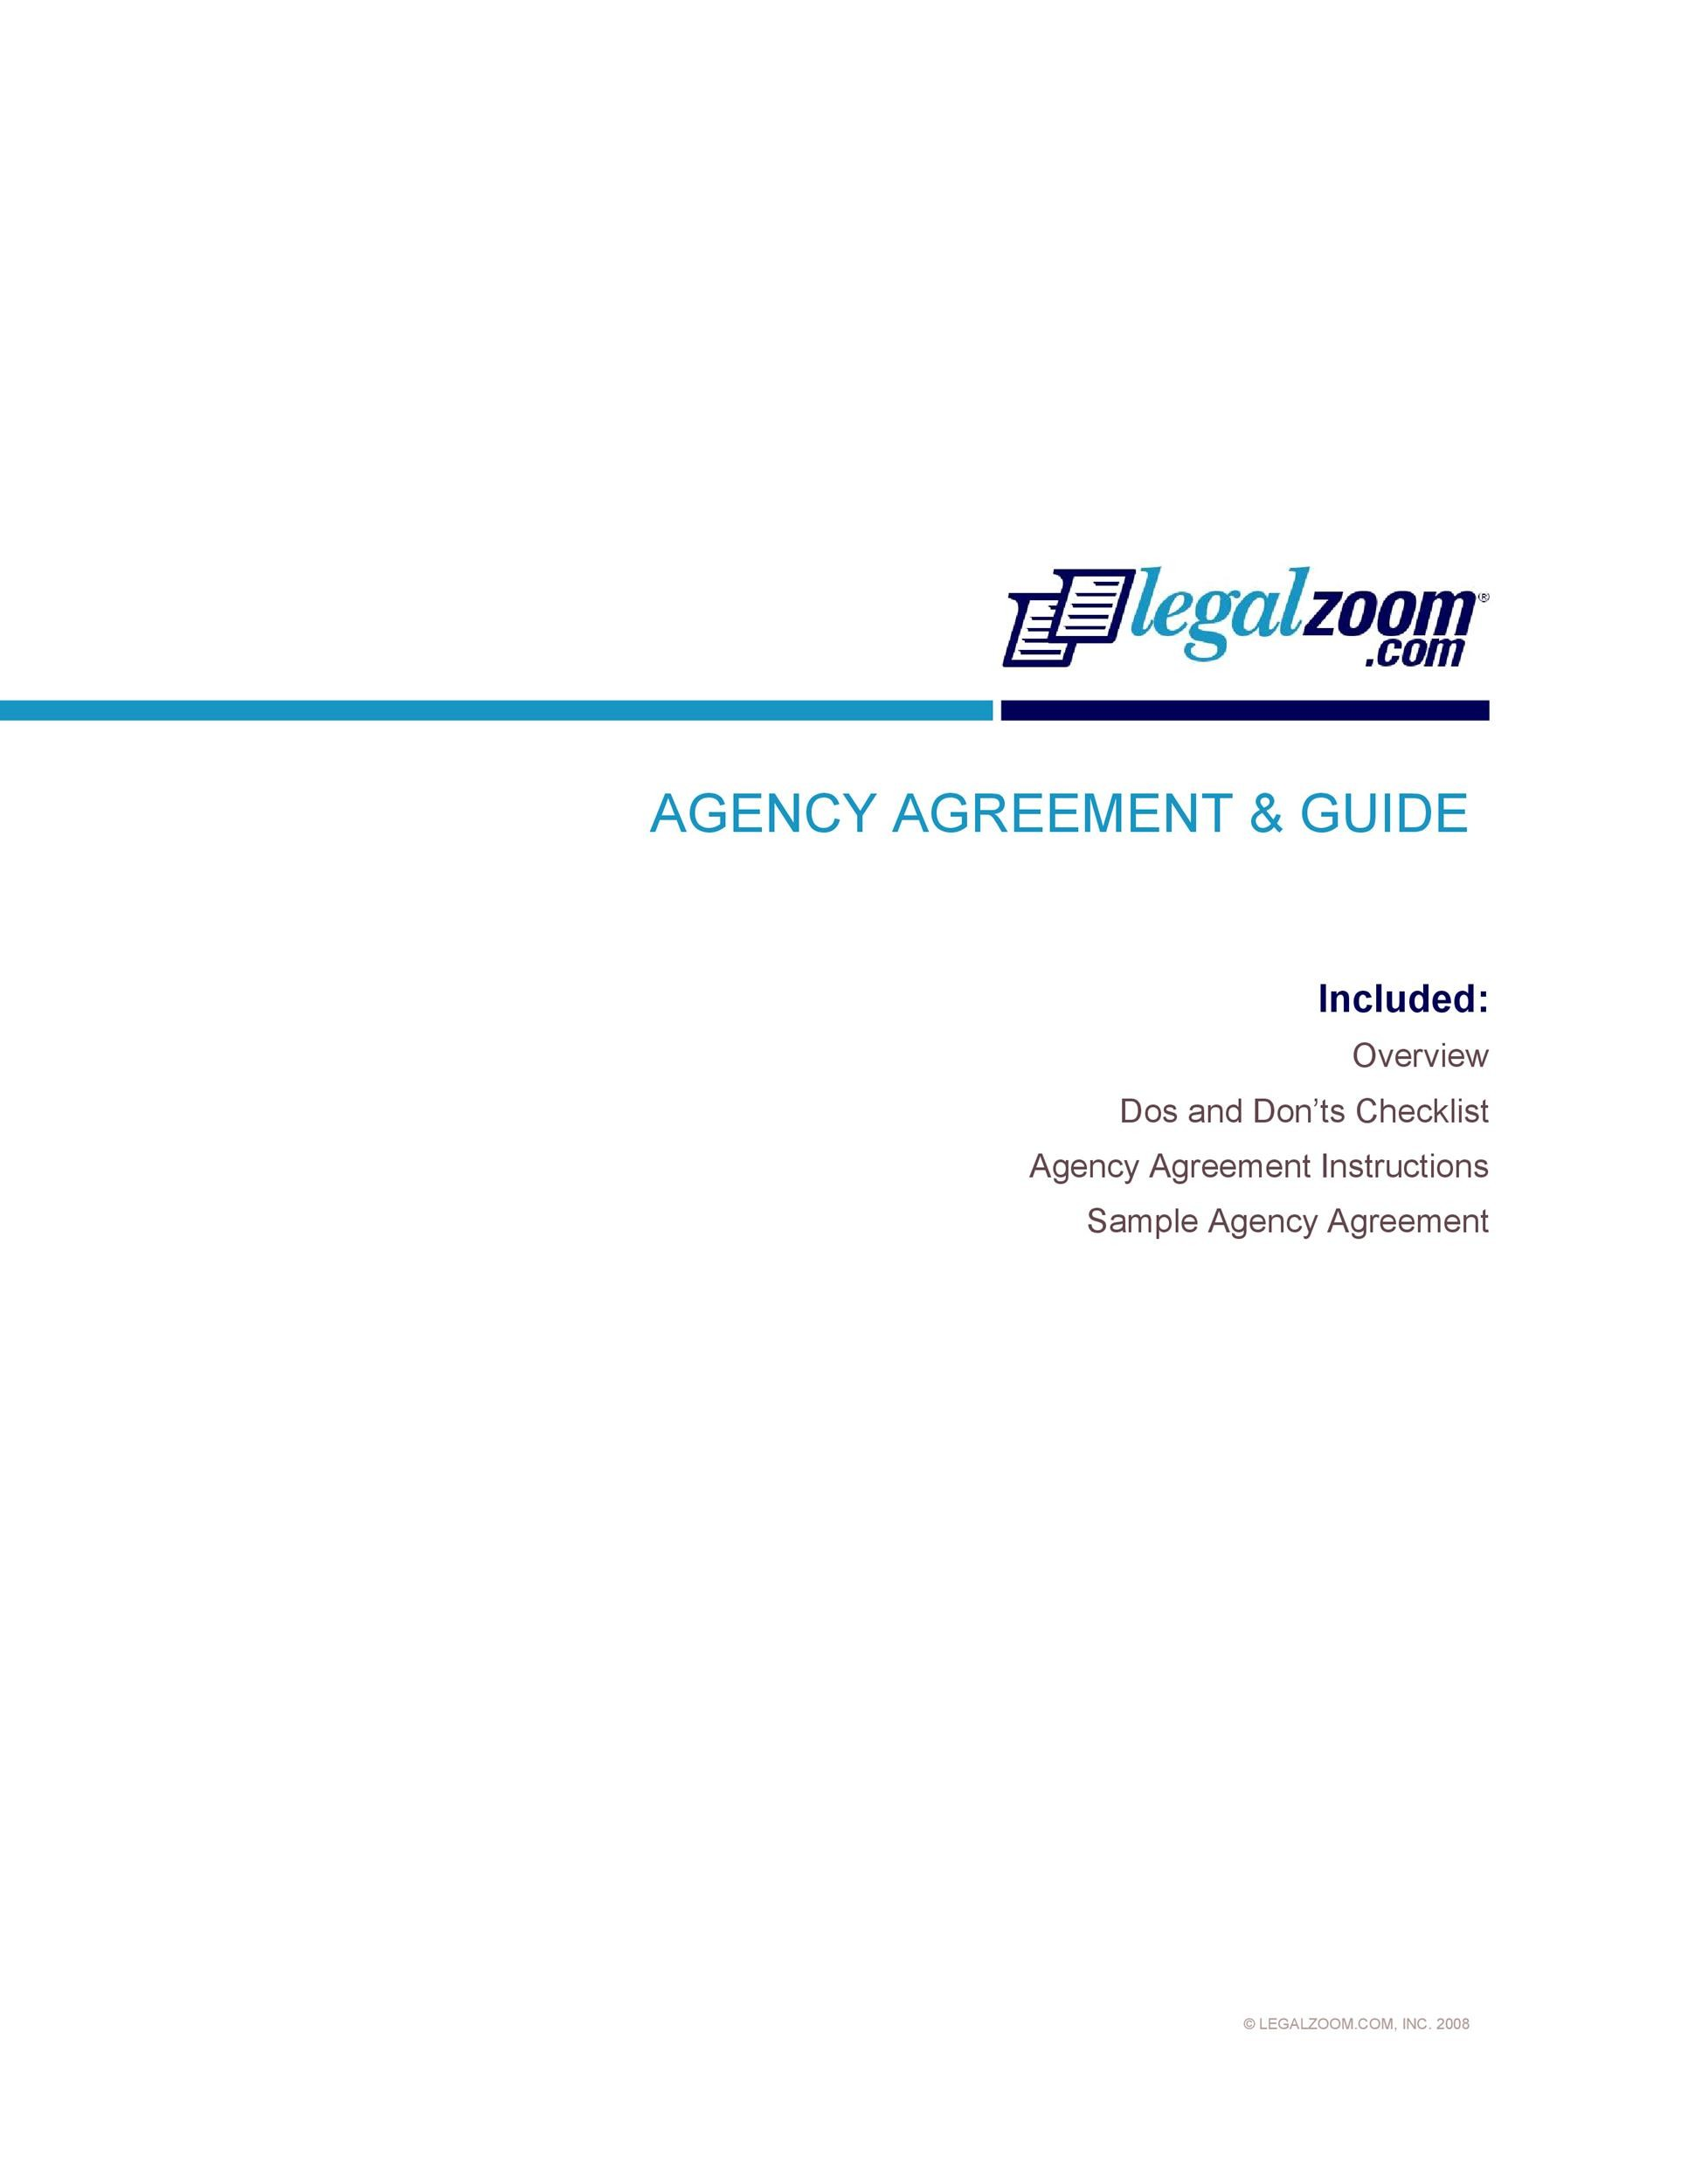 Free agency agreement 06